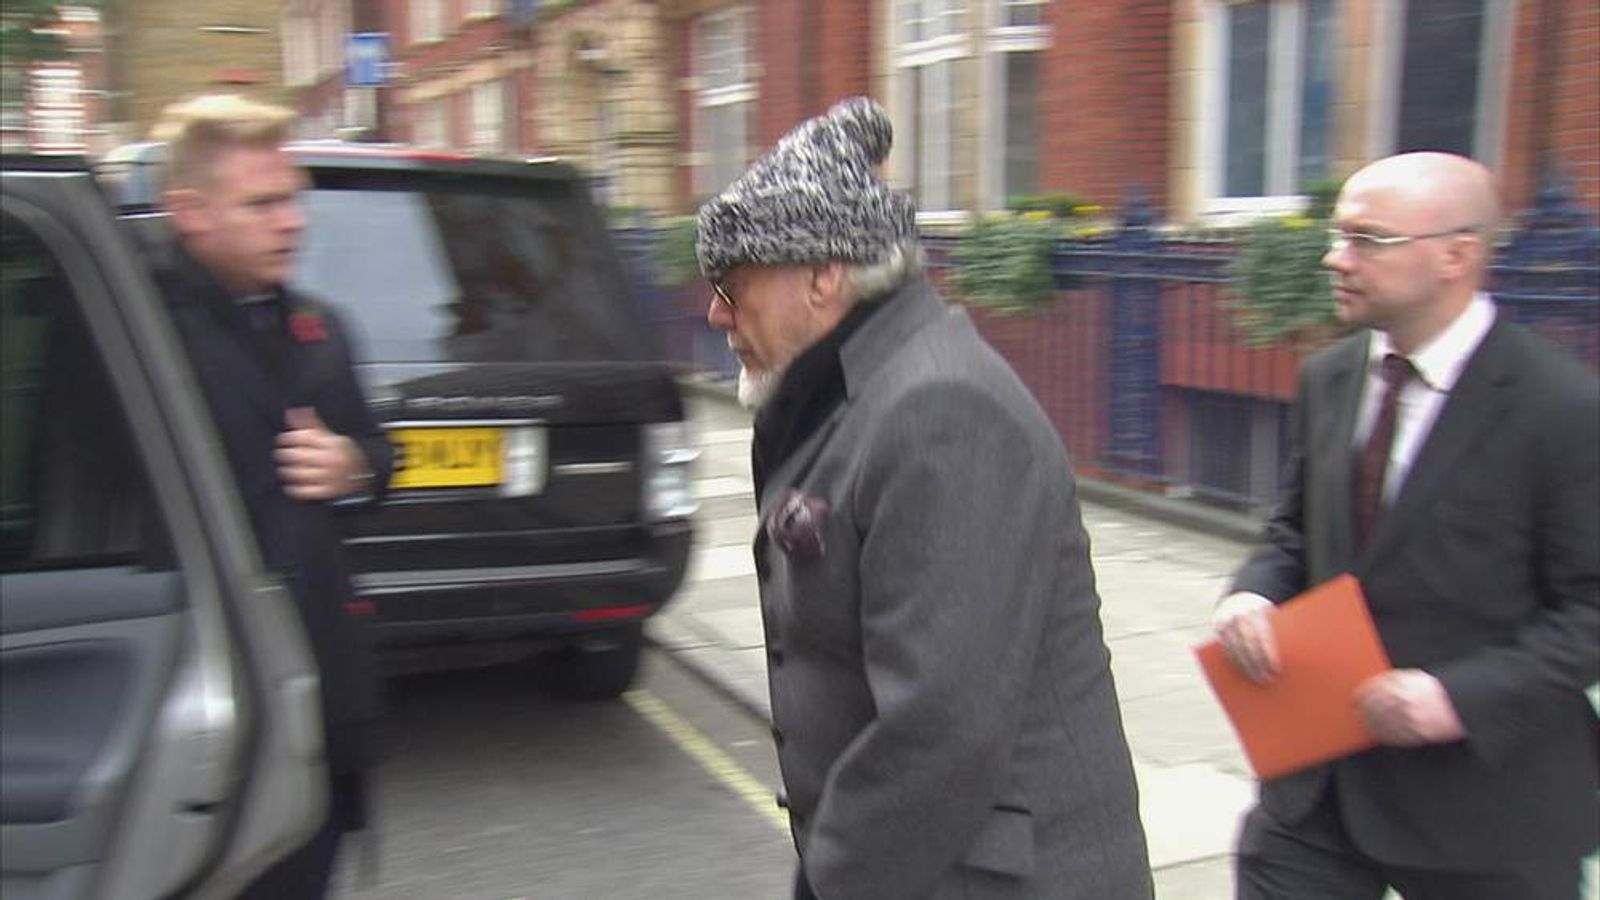 Gary Glitter arrested in central London